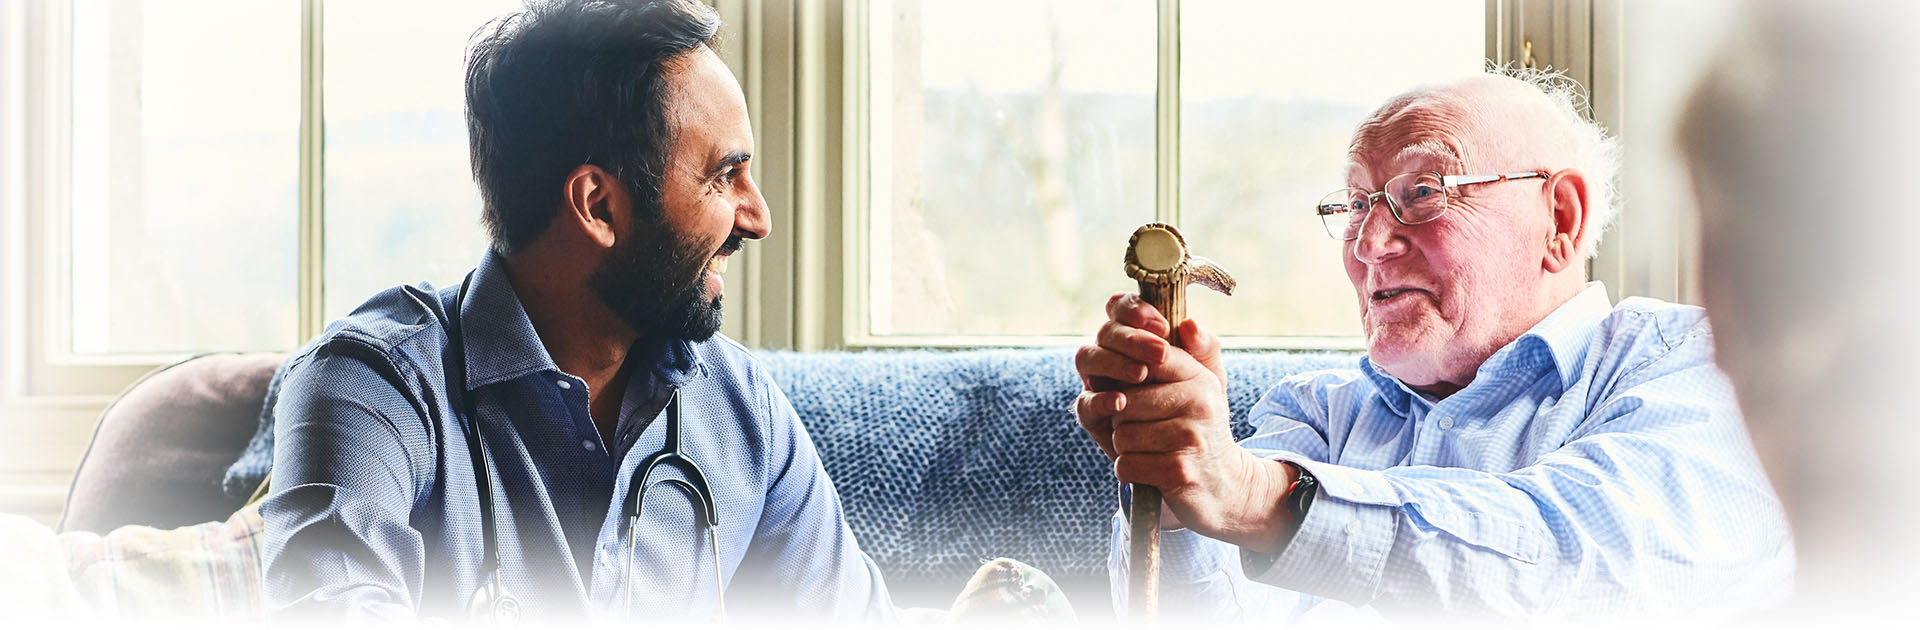 two men sitting on the couch laughing, one holds a walking stick